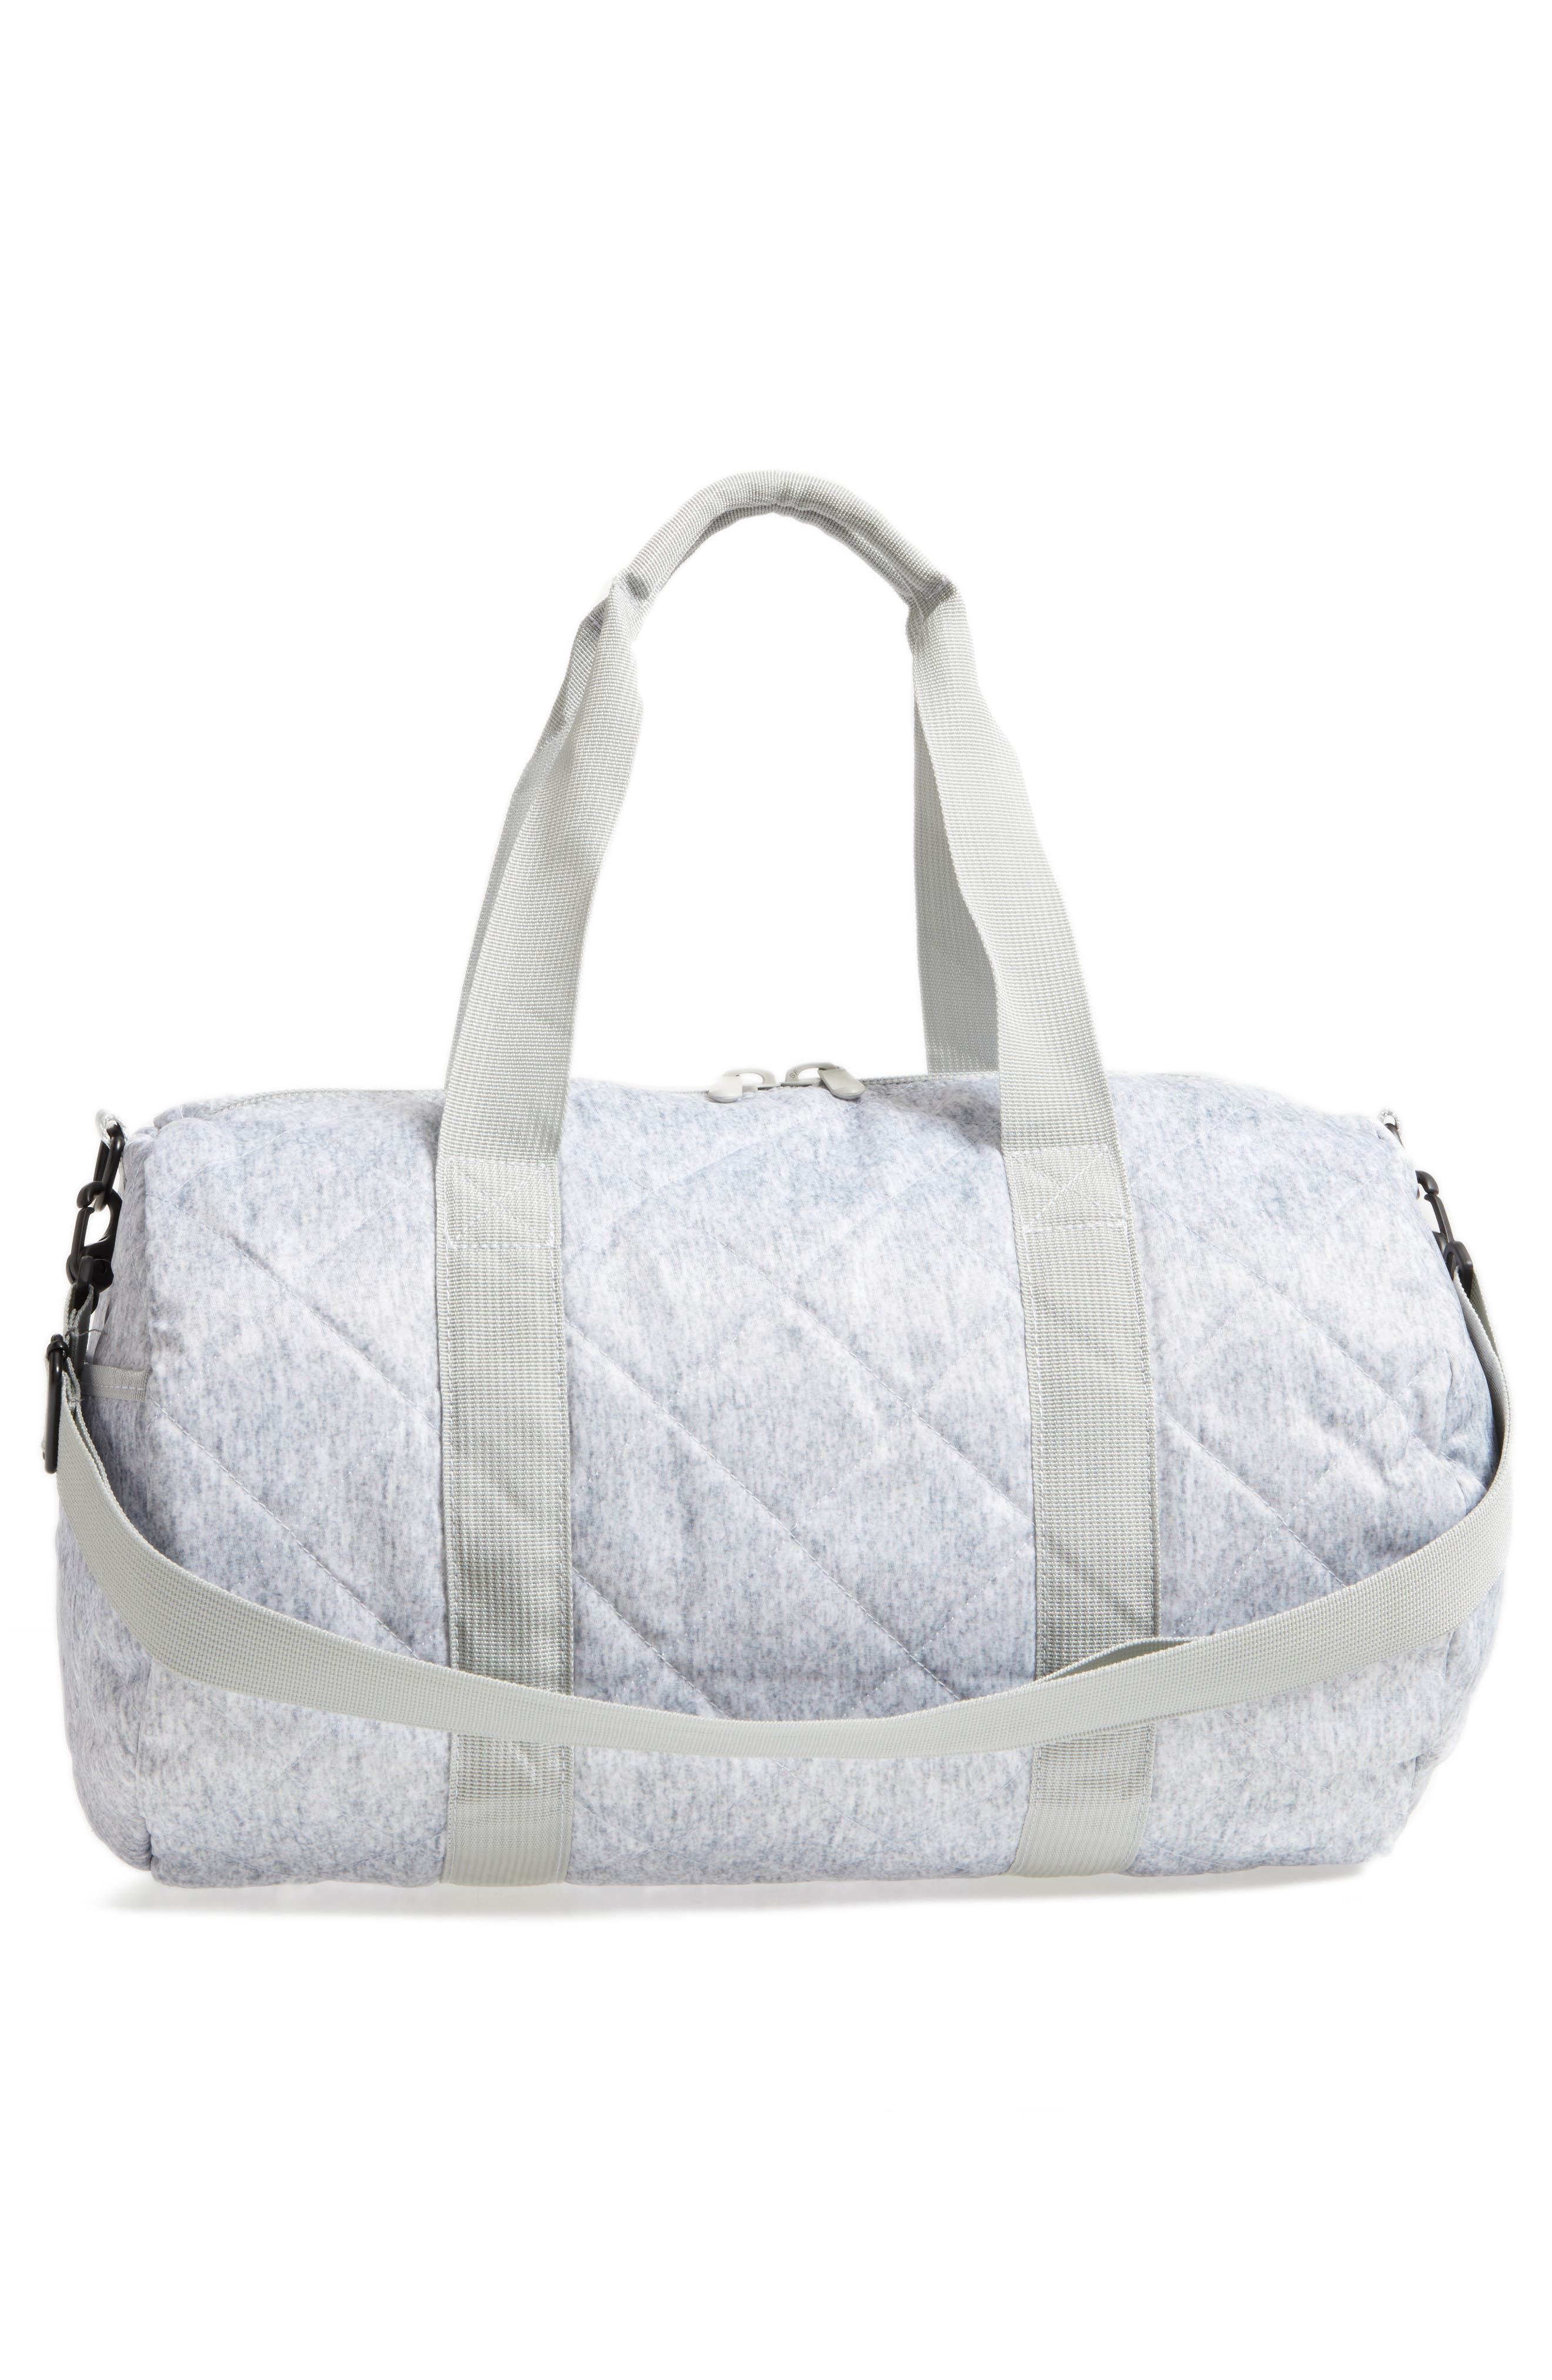 Roadie Small Duffel Bag,                             Alternate thumbnail 3, color,                             QUILTED GRAY NYLON